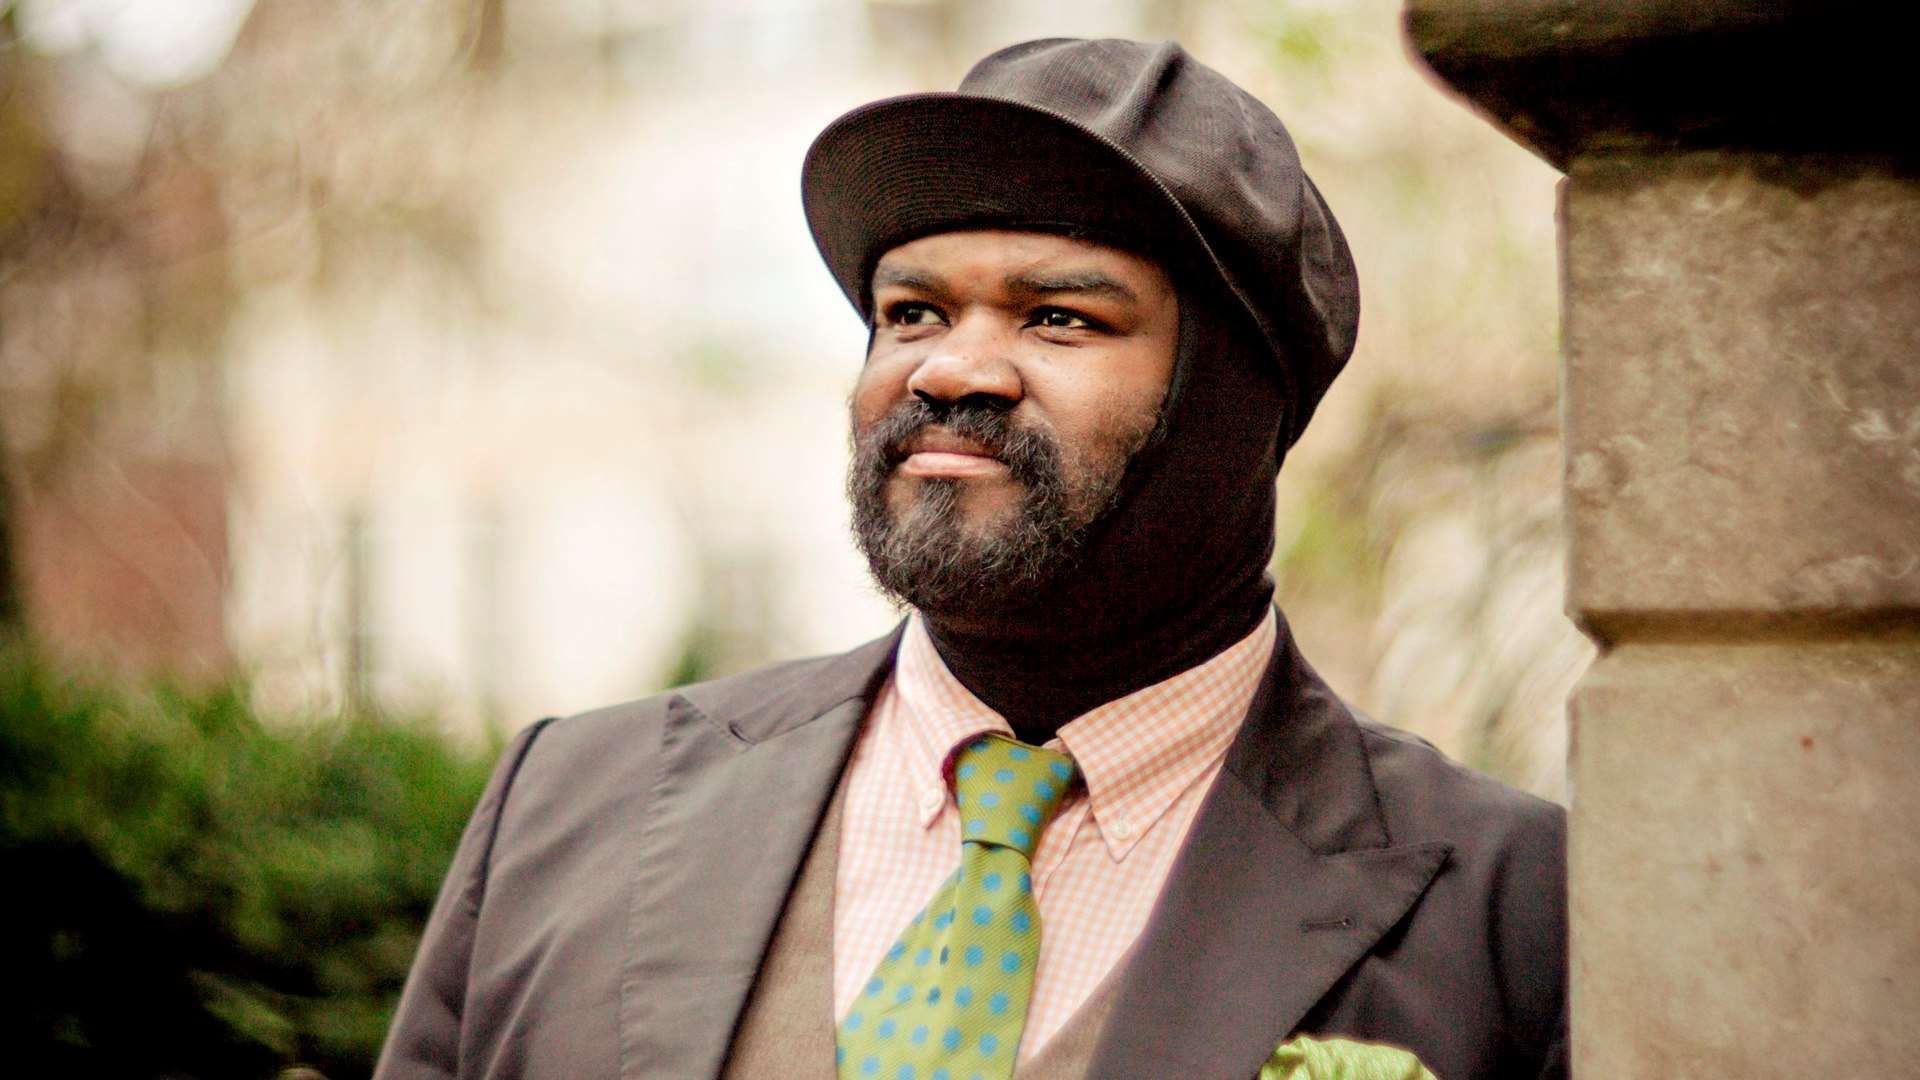 Le Meilleur Gregory Porter Announces Uk Tour For April 2016 Ce Mois Ci